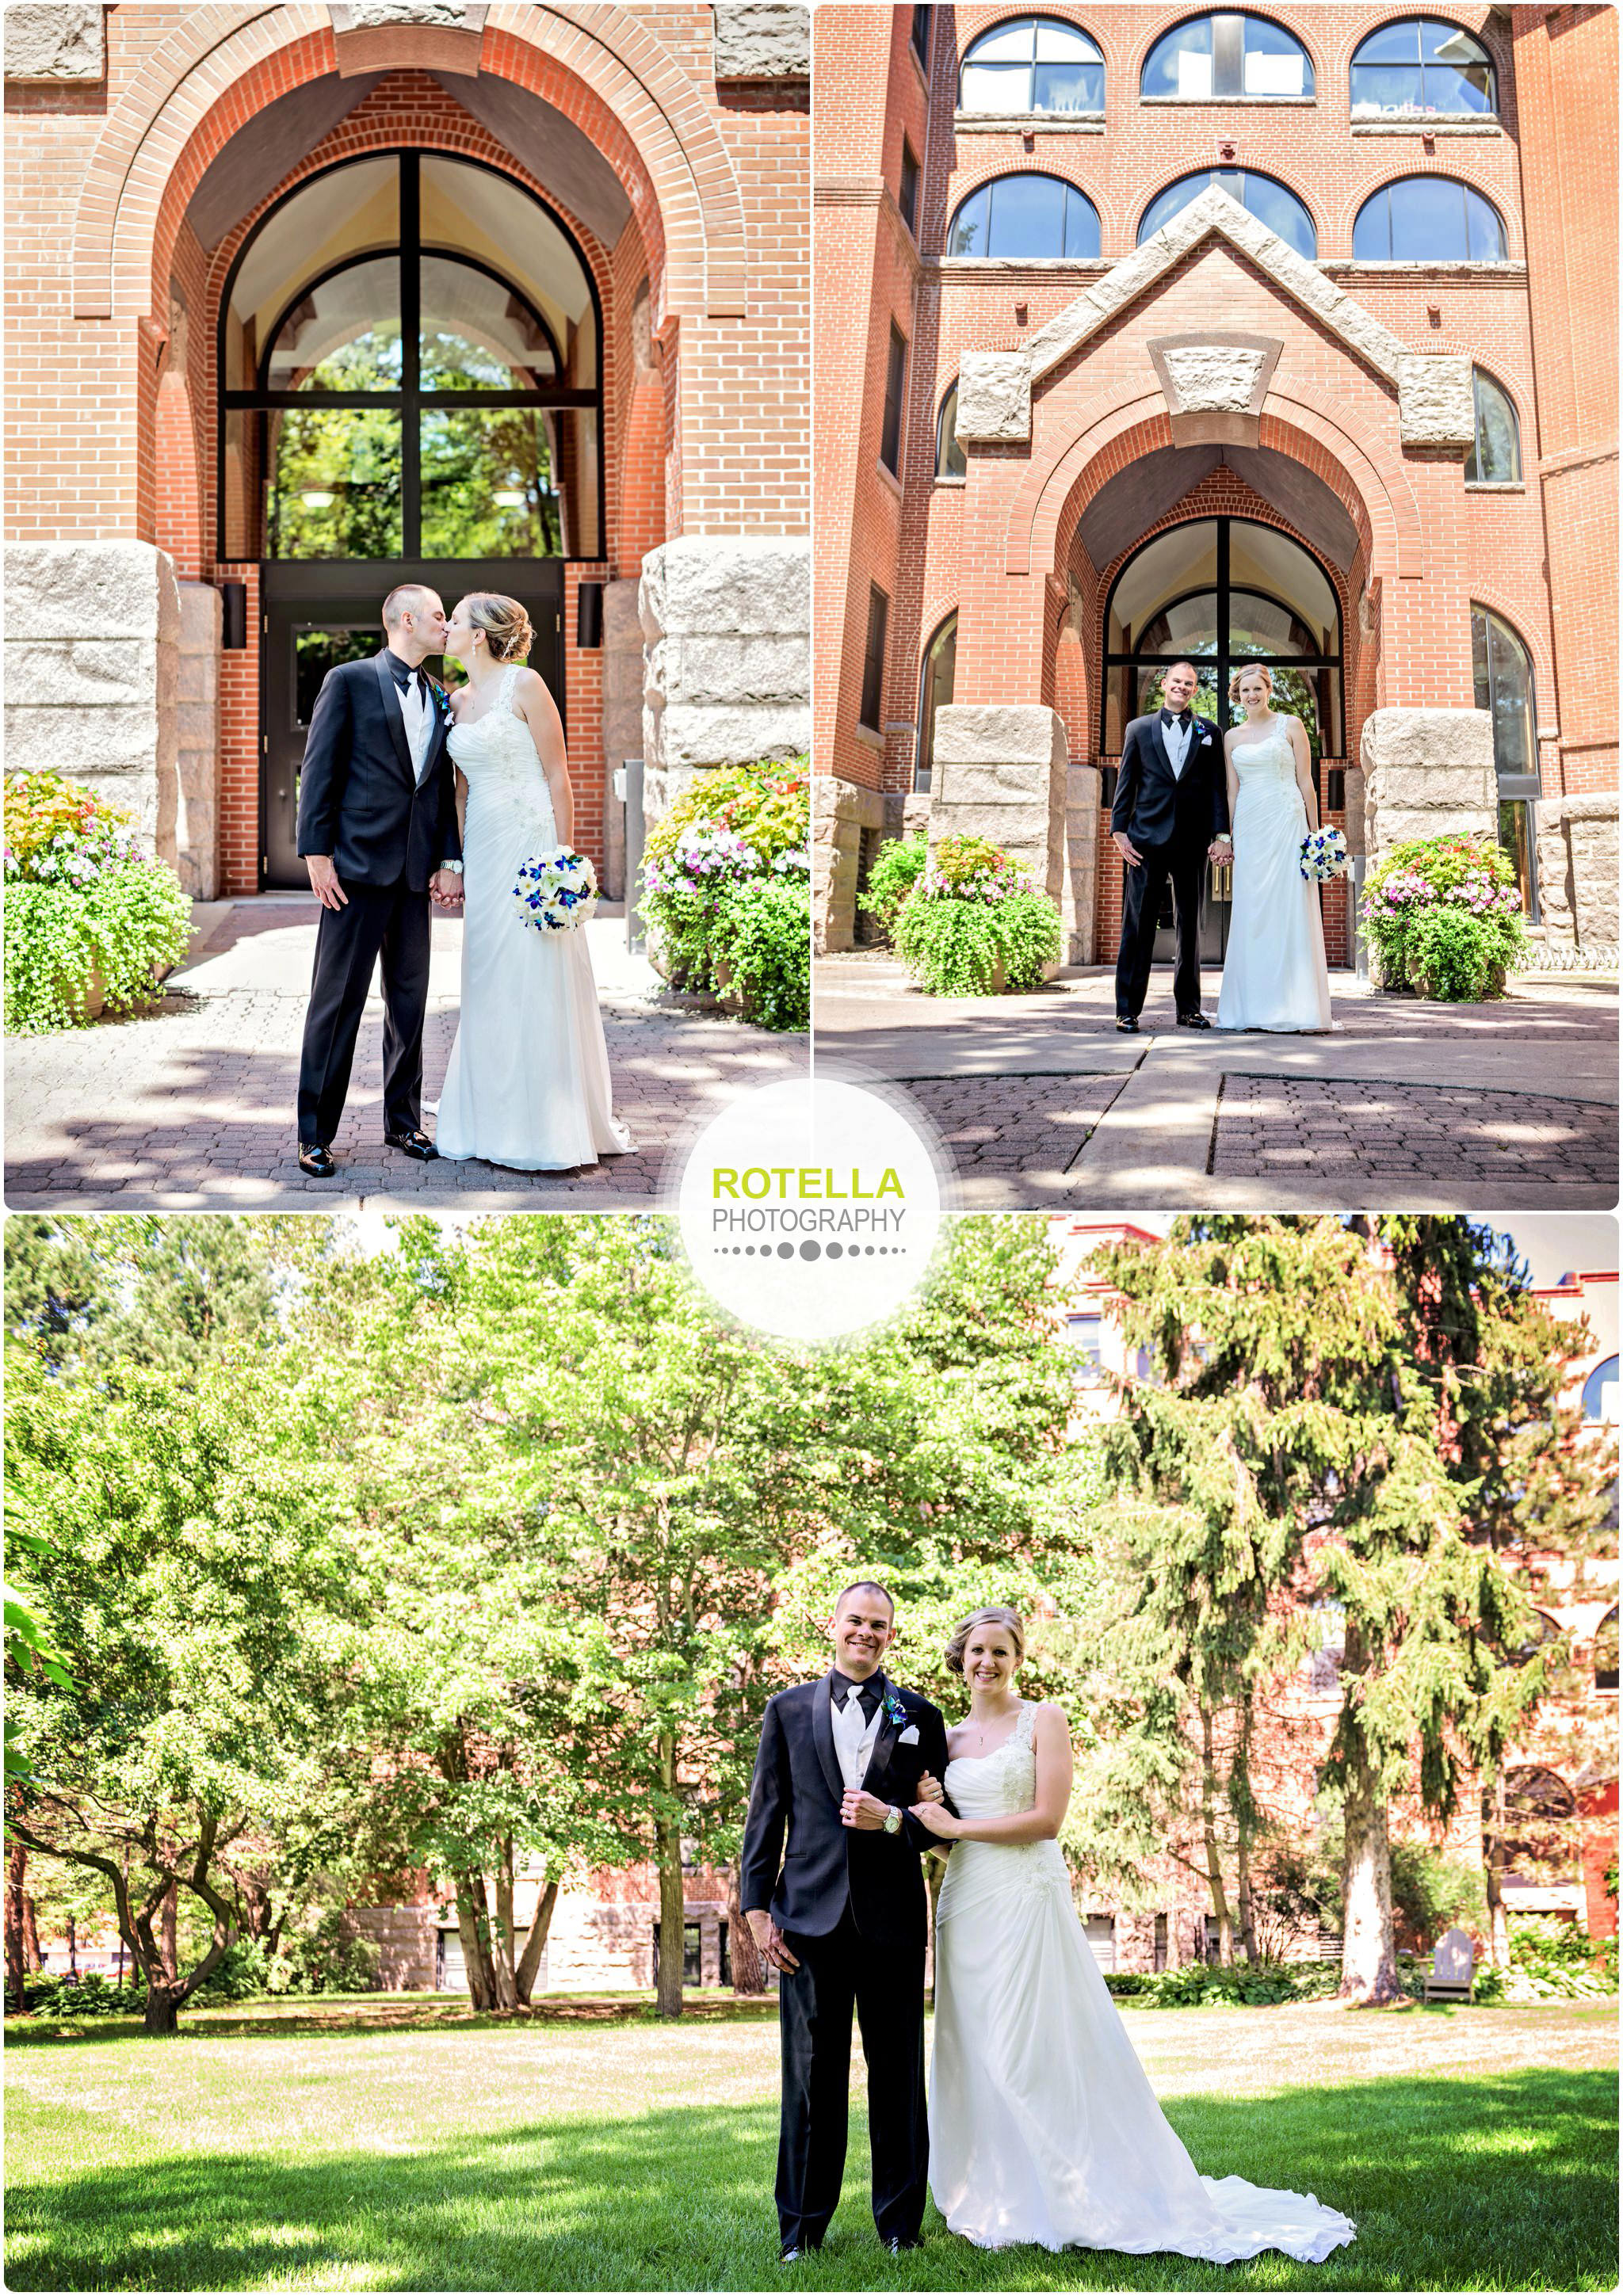 A College of St. Benedict's Wedding outdoor portraits by the courtyard